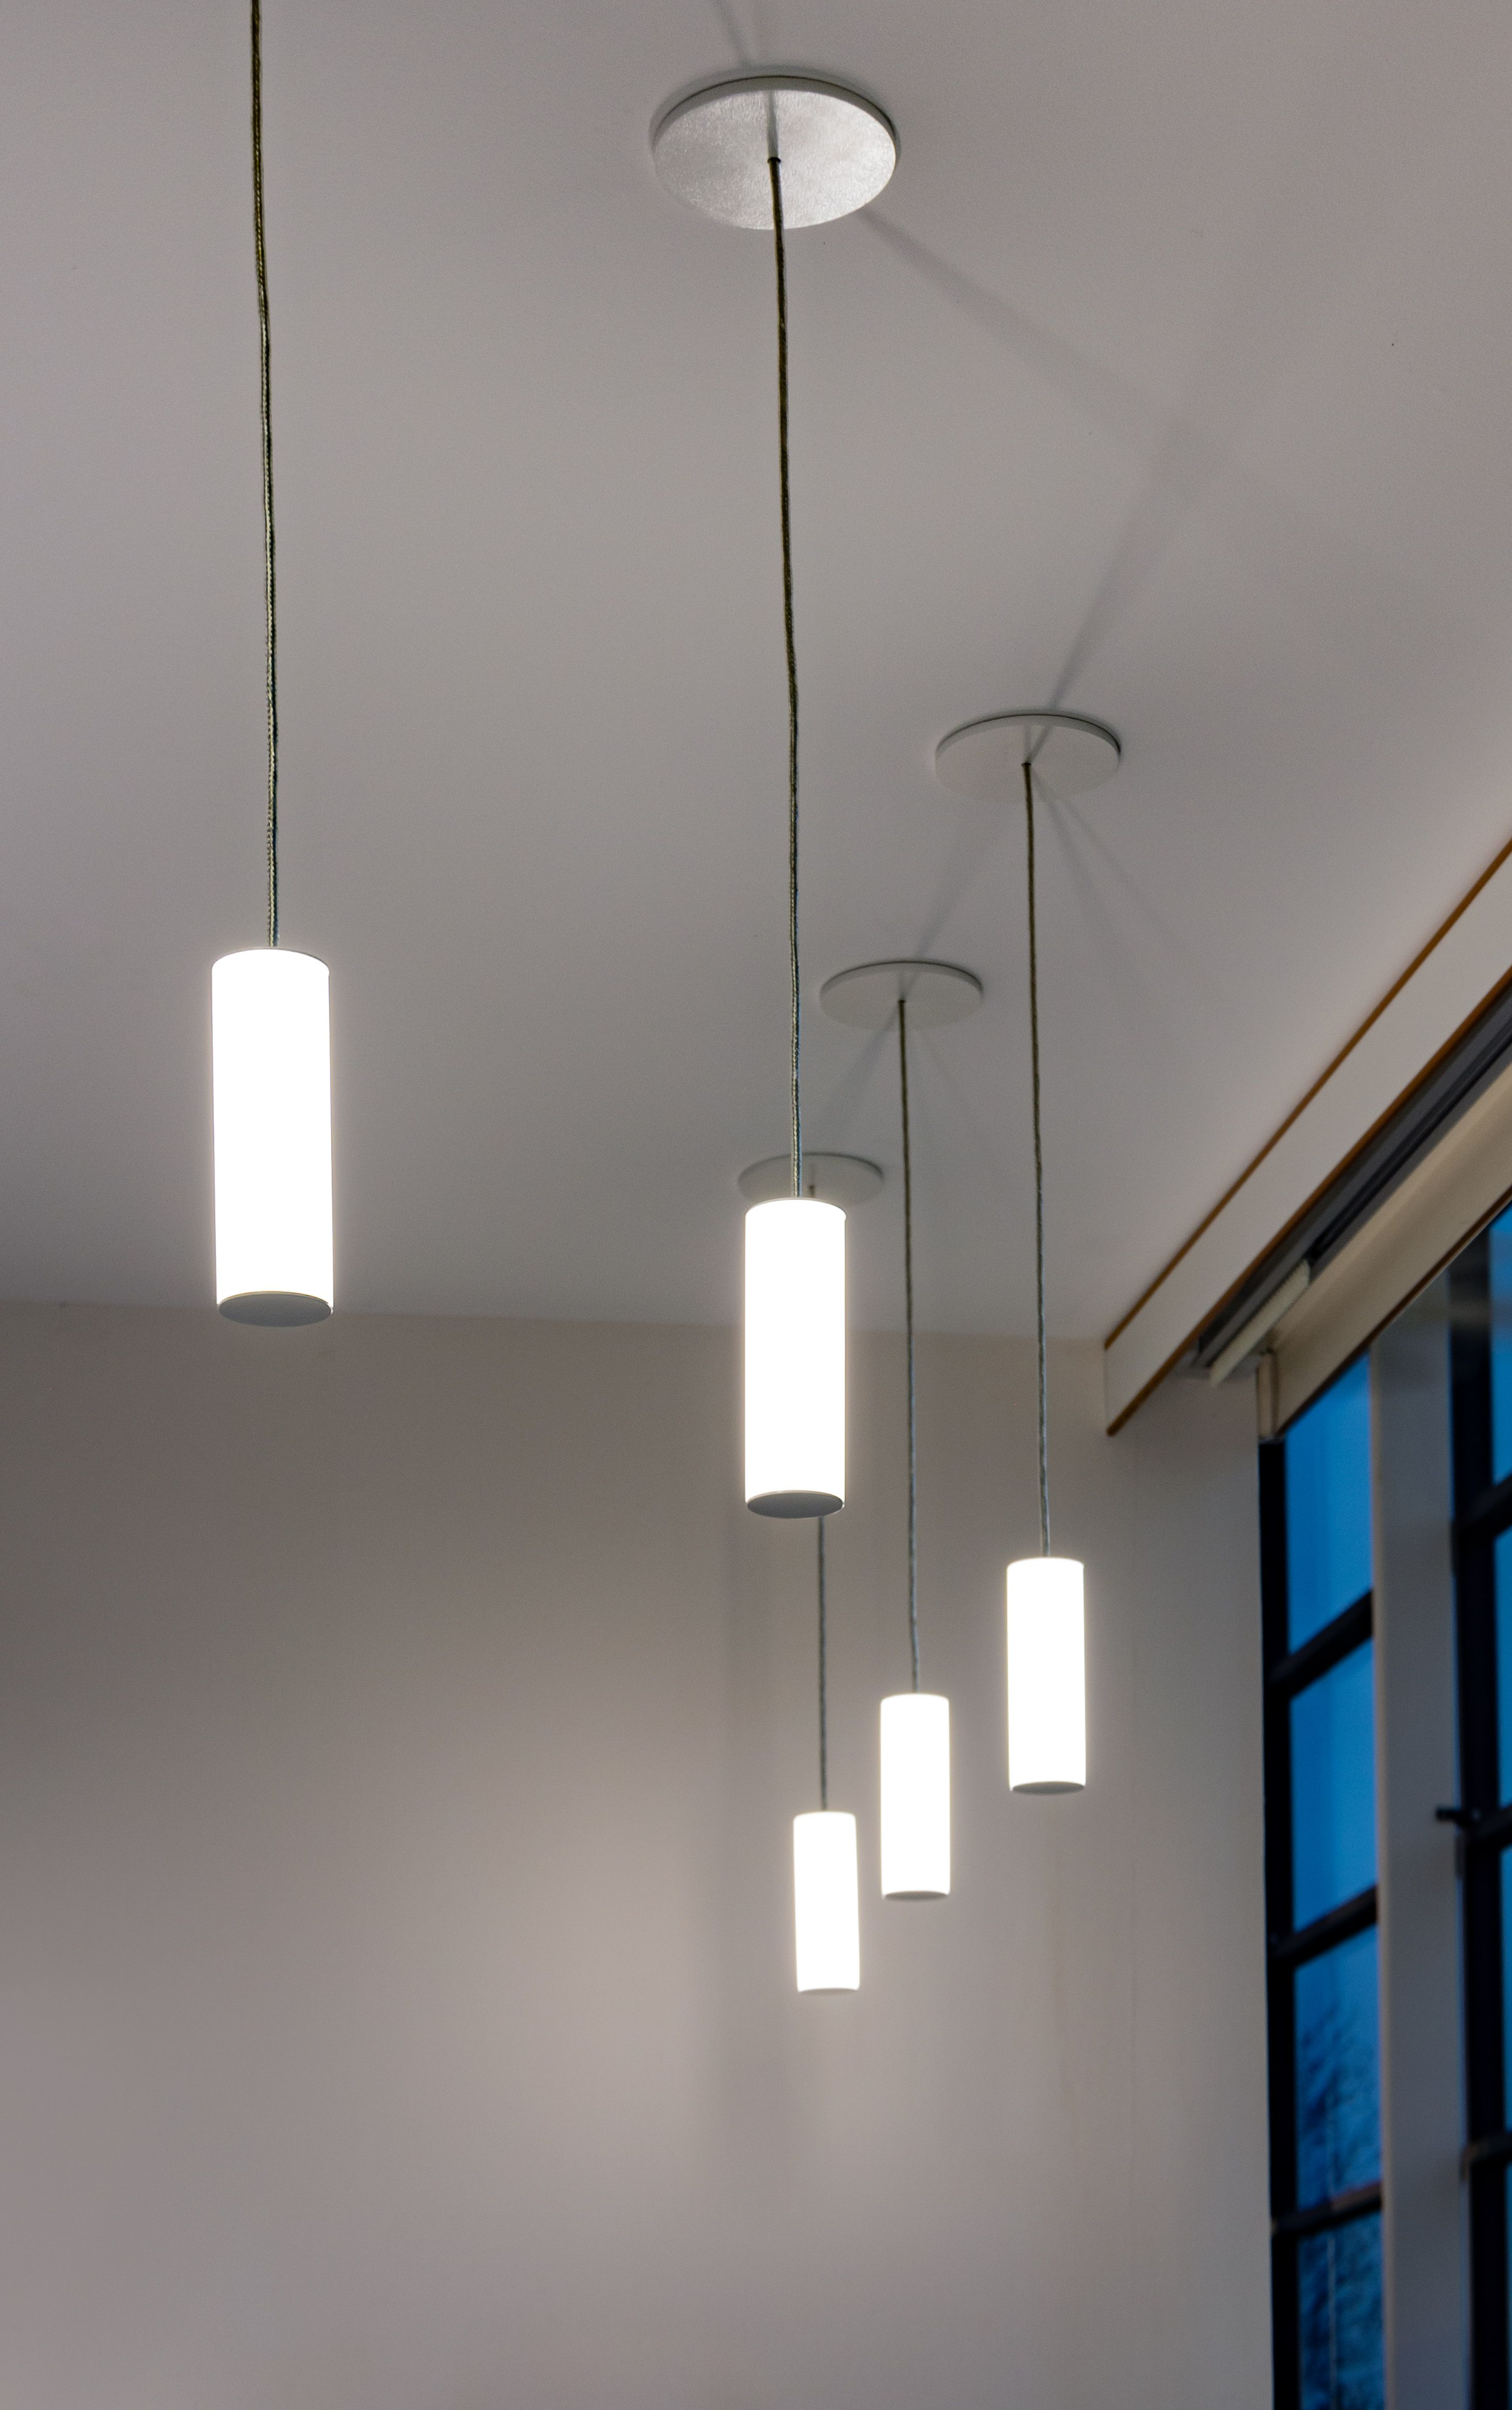 Pin on Architectural Decorative Lighting